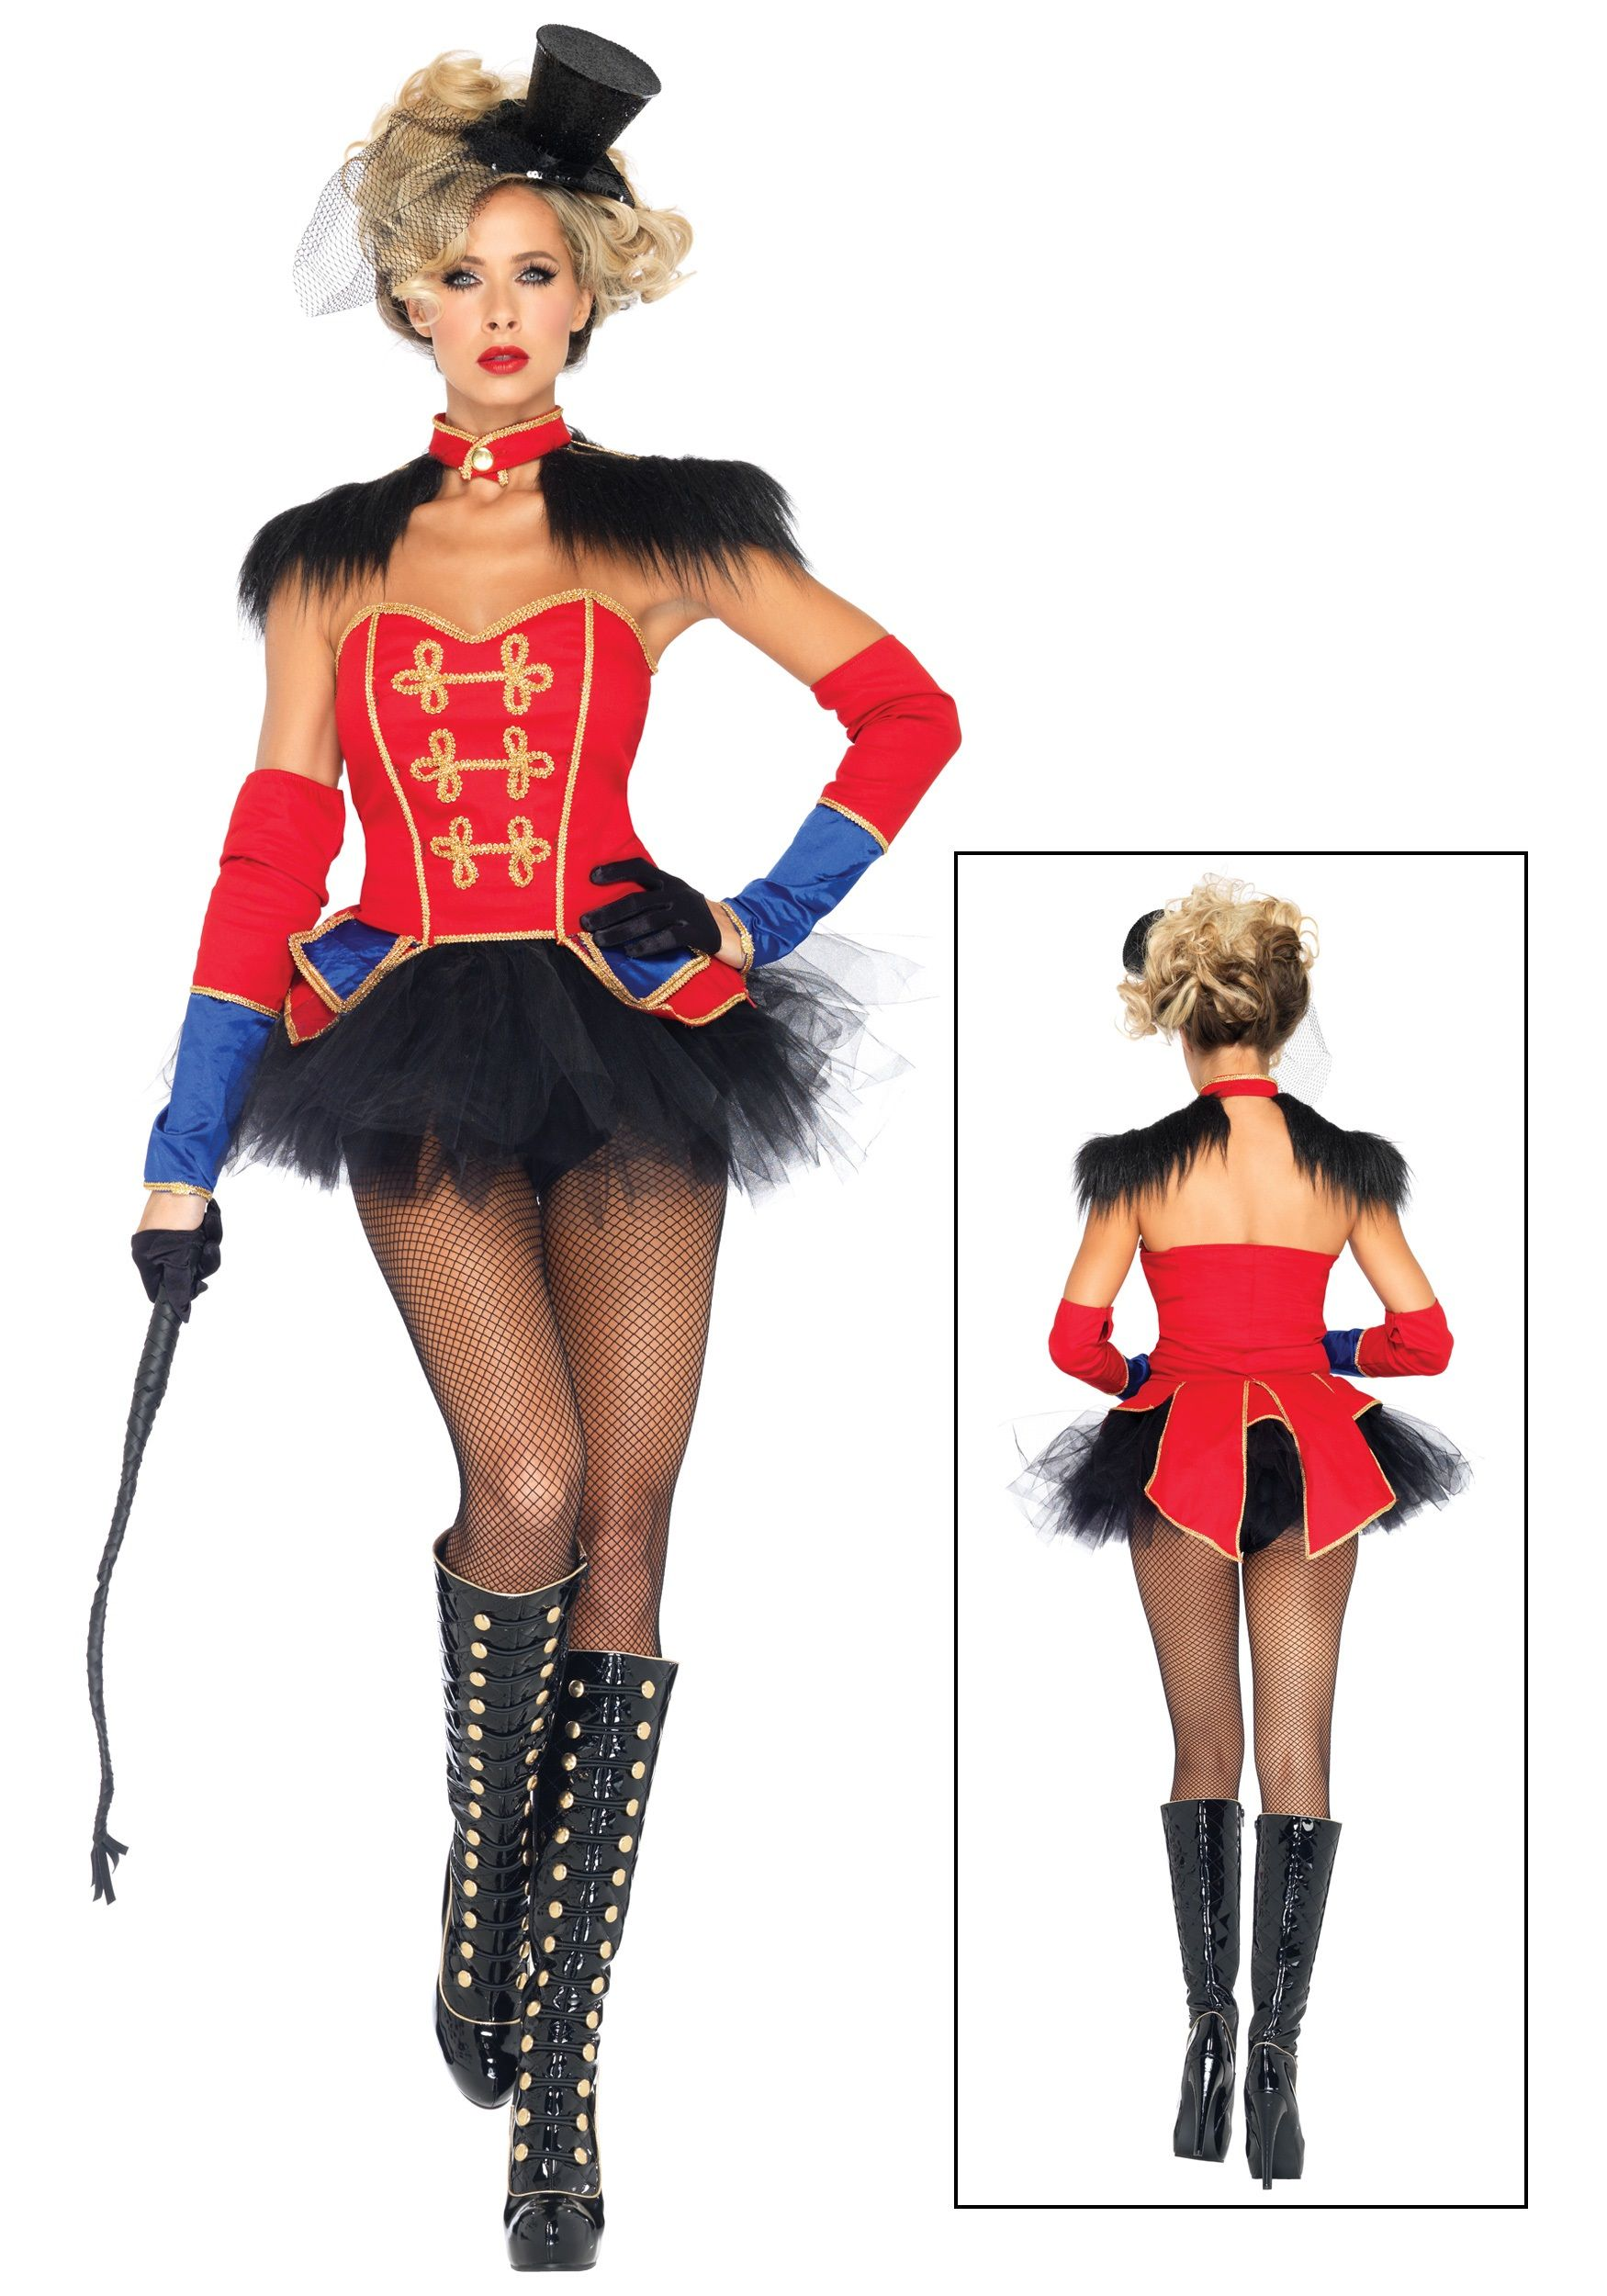 circus costumes   ... Dance Costumes • Clown Costumes • Circus Ring Mistress Costume